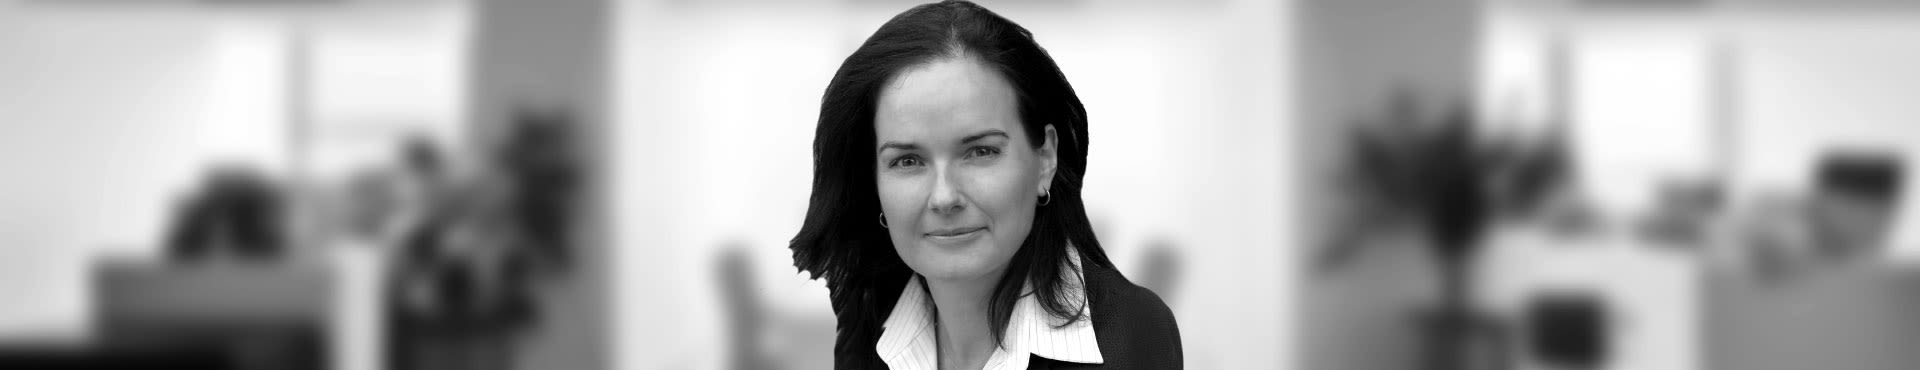 Shine Lawyers | Elspeth Dalzell | Shine Lawyers